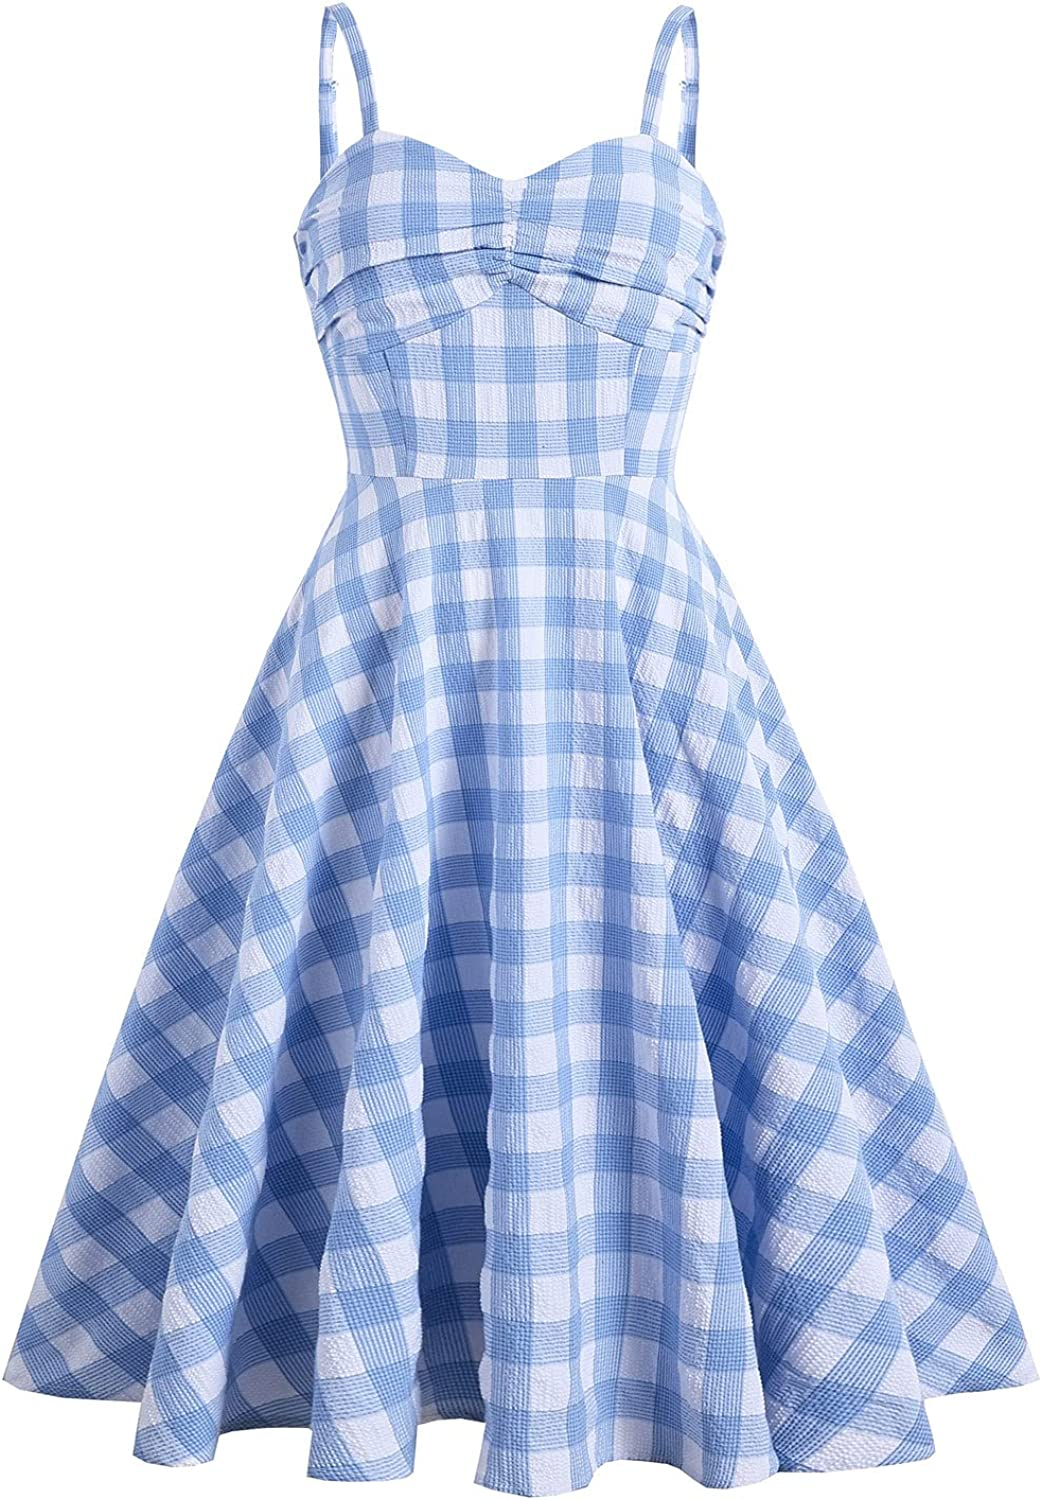 Wellwits Women's Ruched Bow Plaid Spaghetti Straps Vintage Cocktail Dress